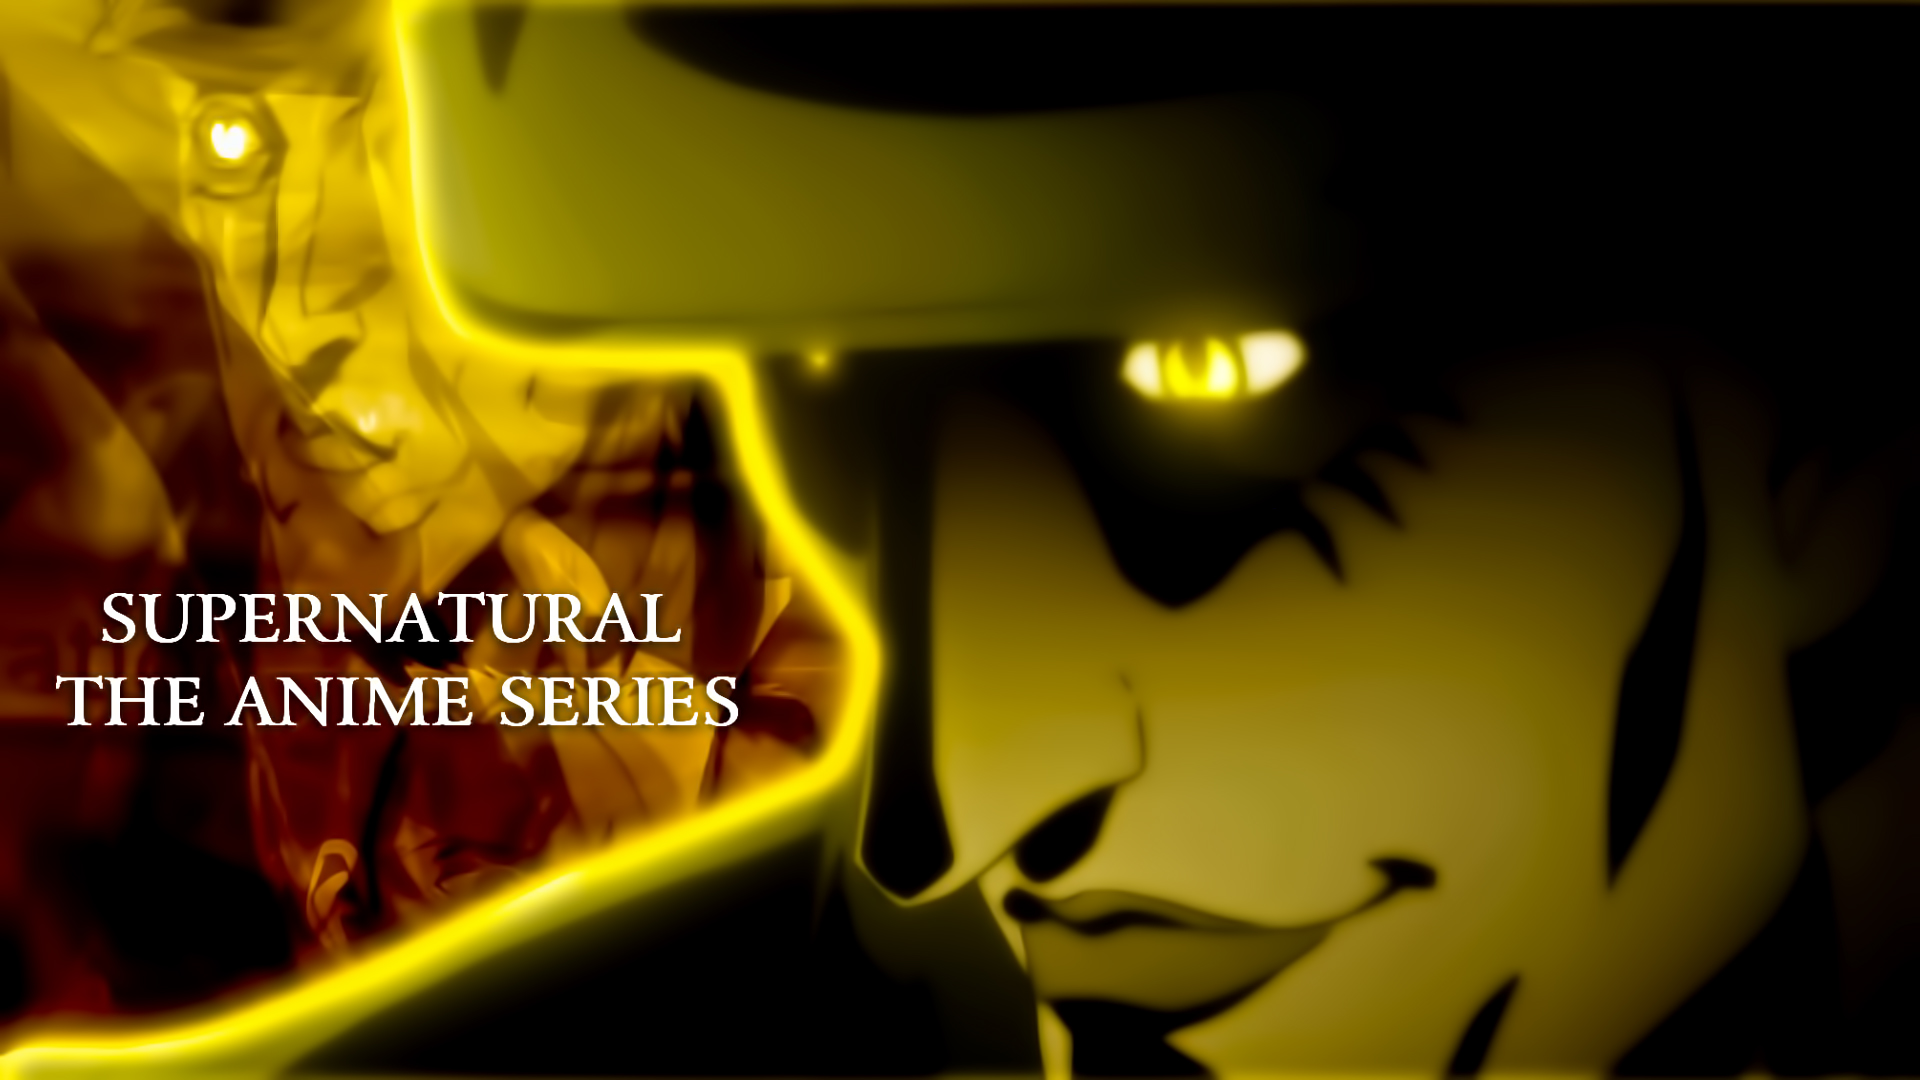 Supernatural The Anime Series Wallpaper Hd 5 By Dance Of